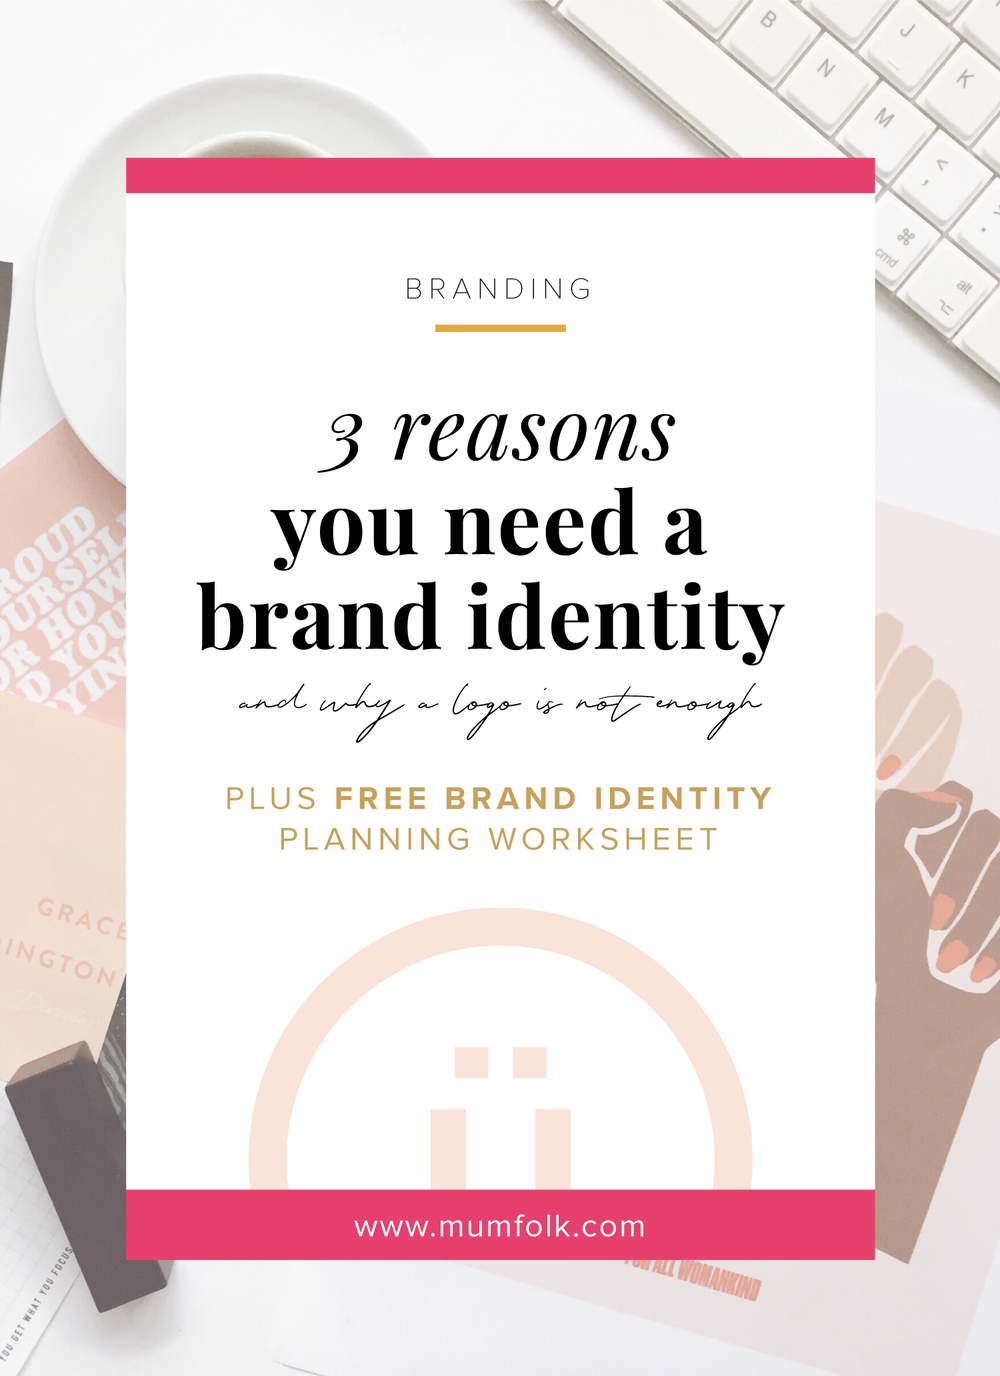 3-REASONS-YOU-NEED-A-BRAND-IDENTITY.png